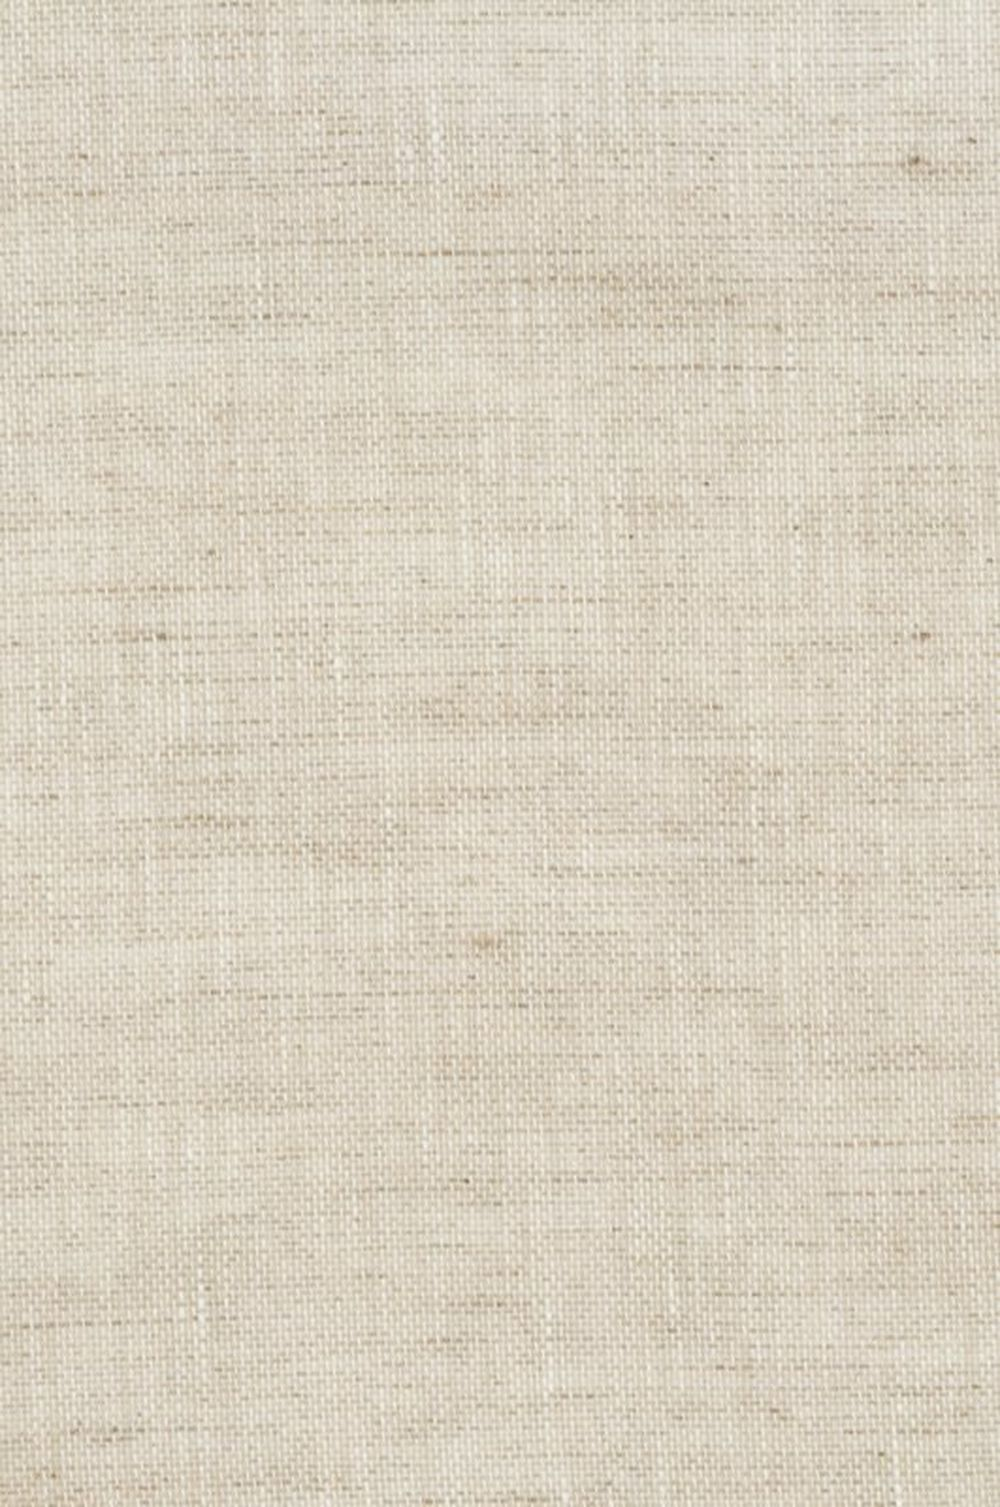 Photo of the fabric Laconia * Linen swatch by James Dunlop. Use for Sheer Curtains. Style of Plain, Sheer